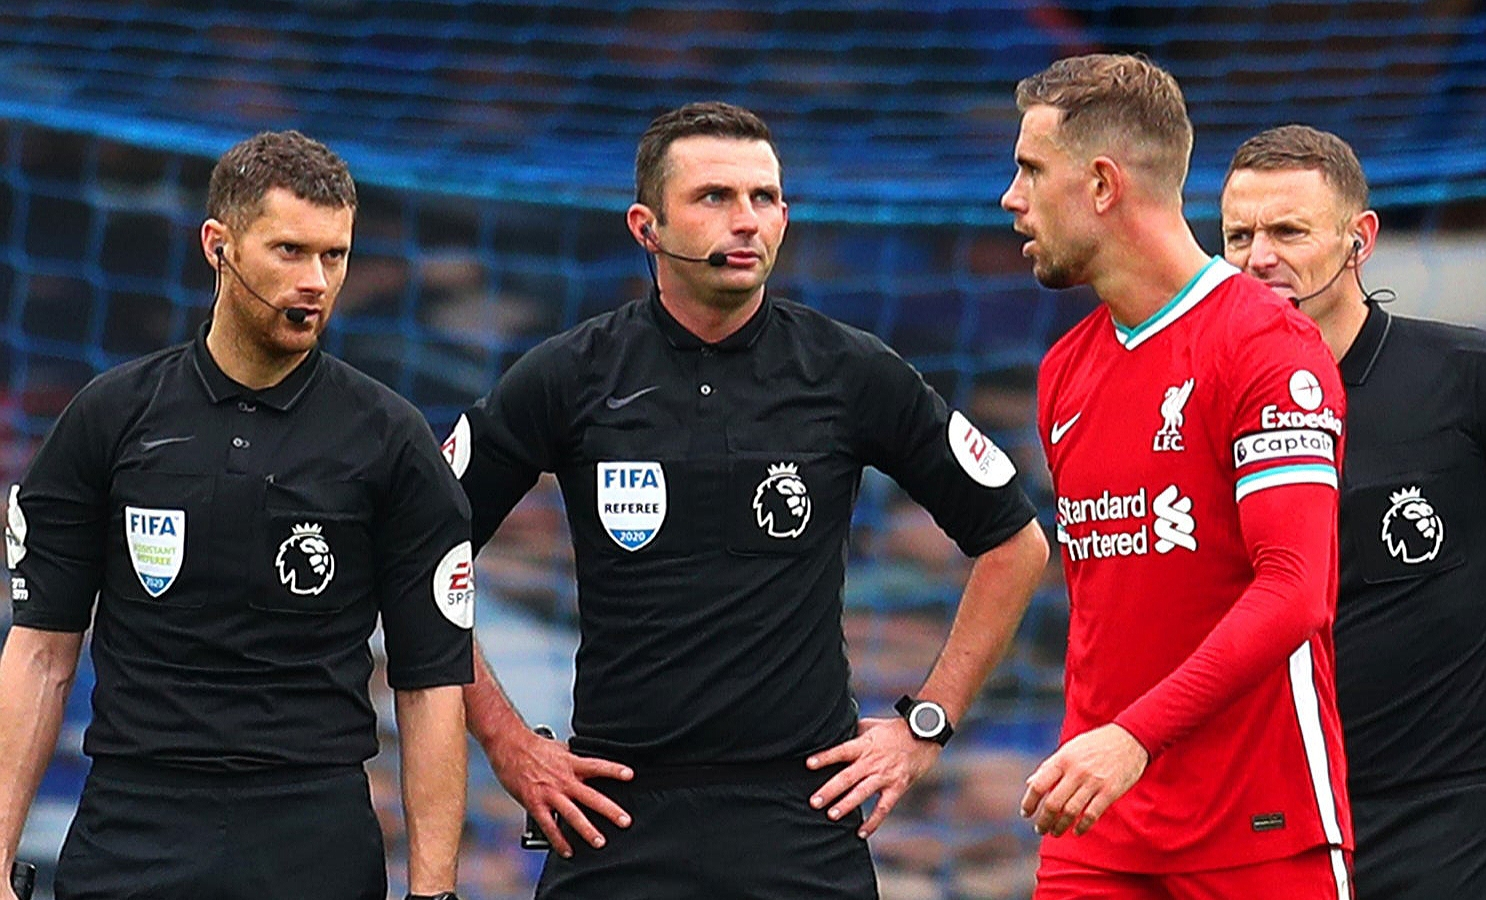 Jordan  Henderson says VAR officials bend the lines sometimes to disallow goals.